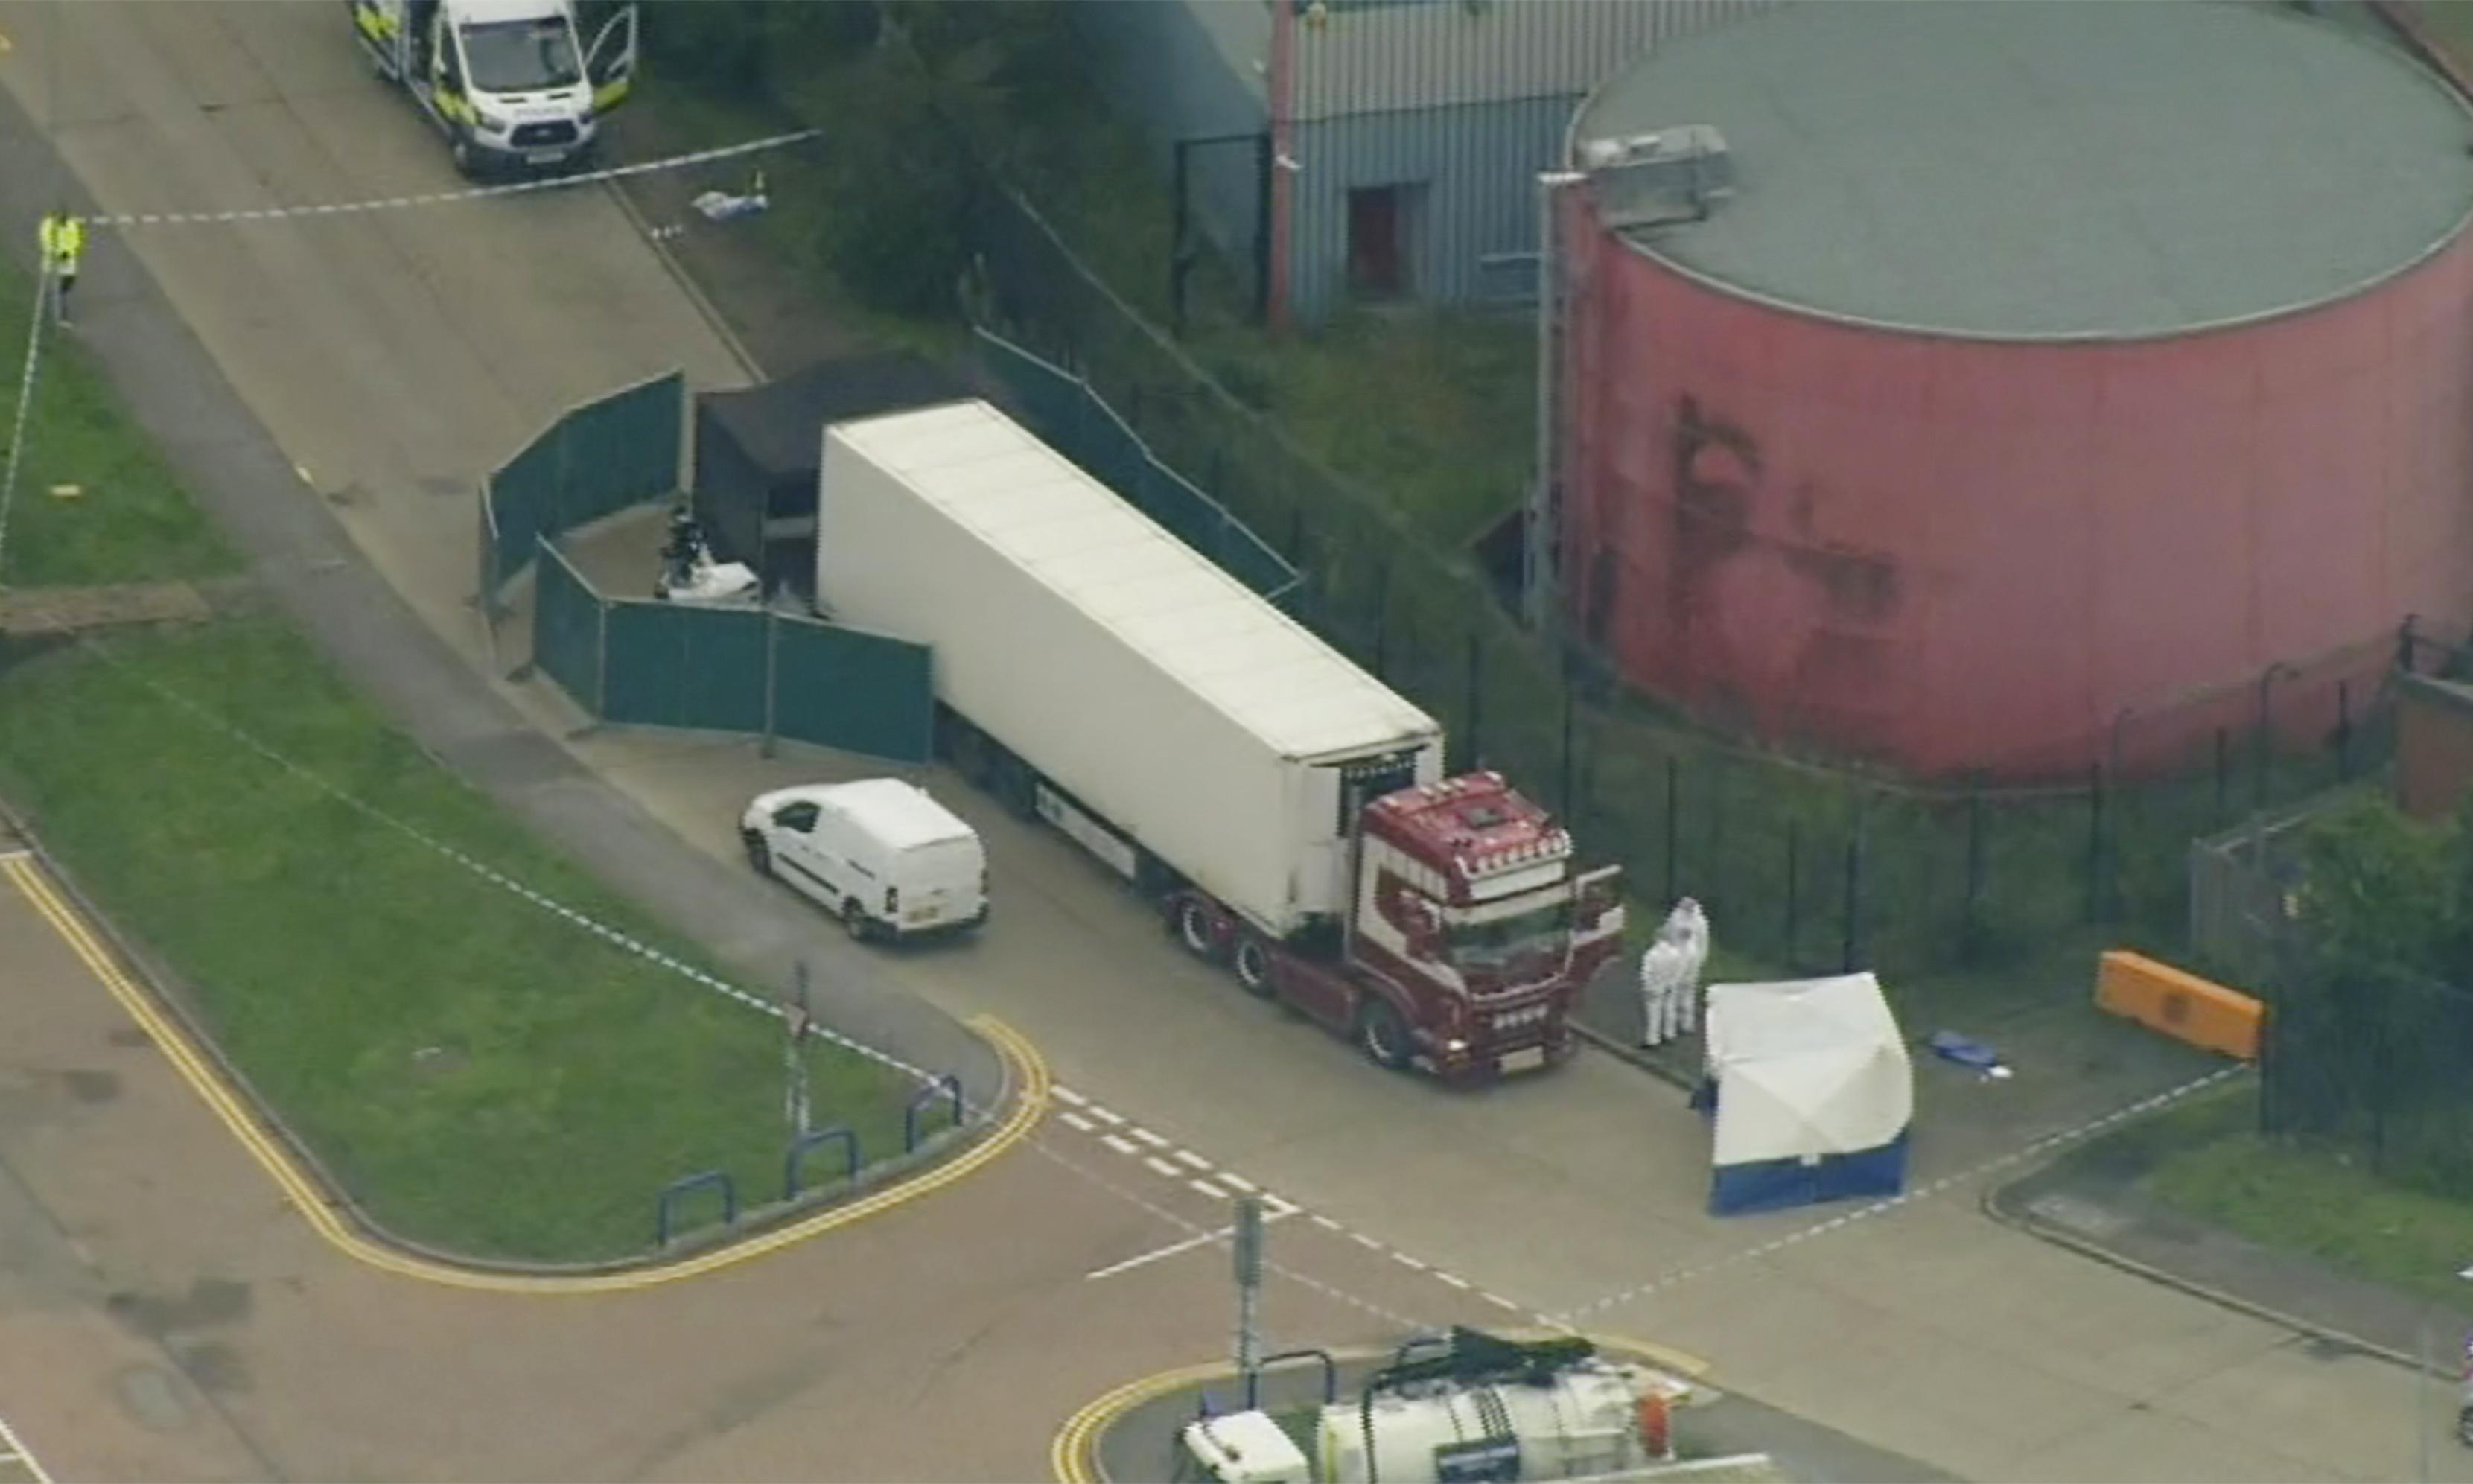 Driver arrested after 39 bodies found in lorry container in Essex